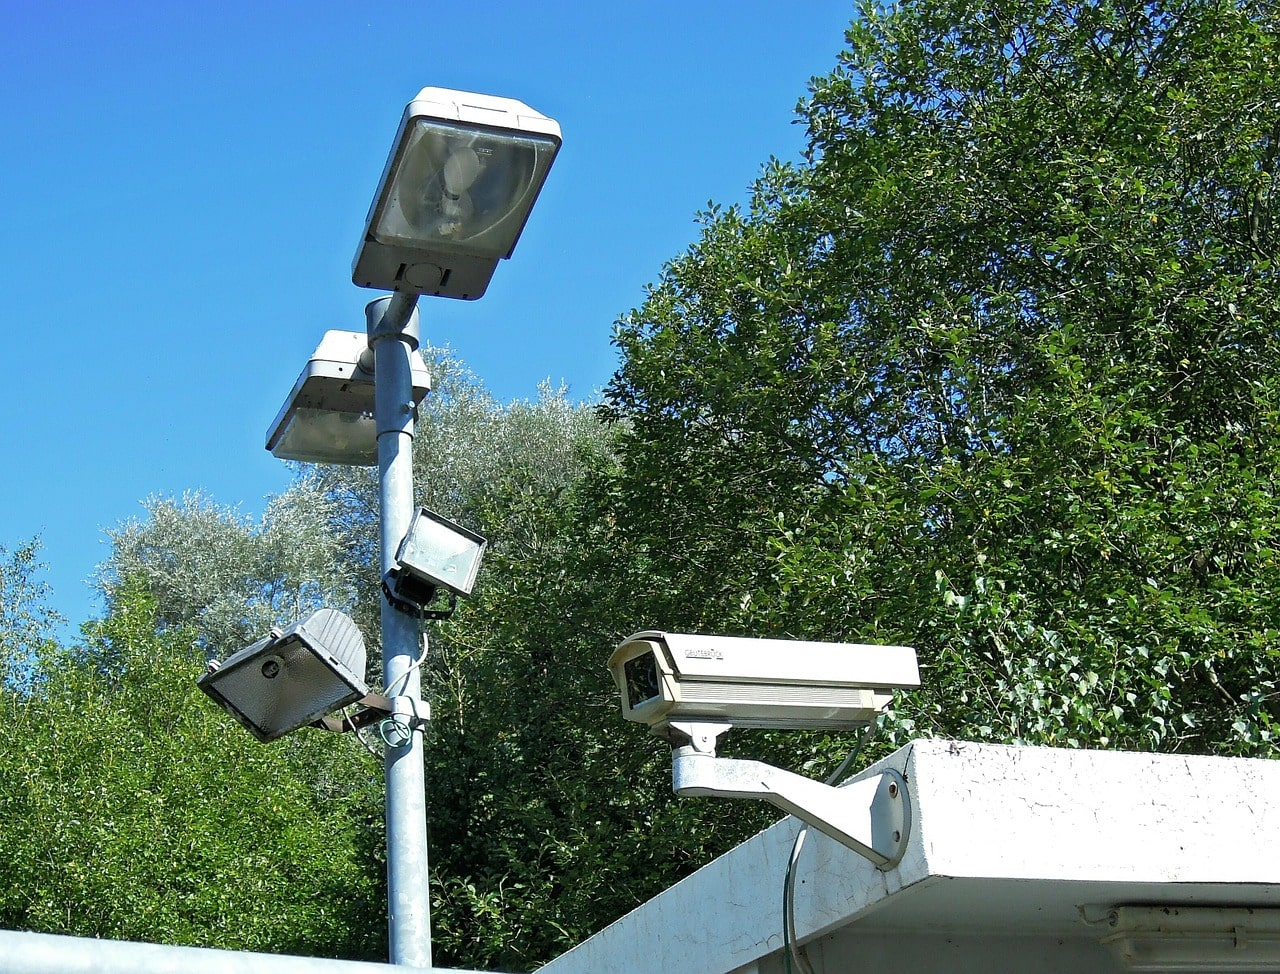 Surveillance and security services